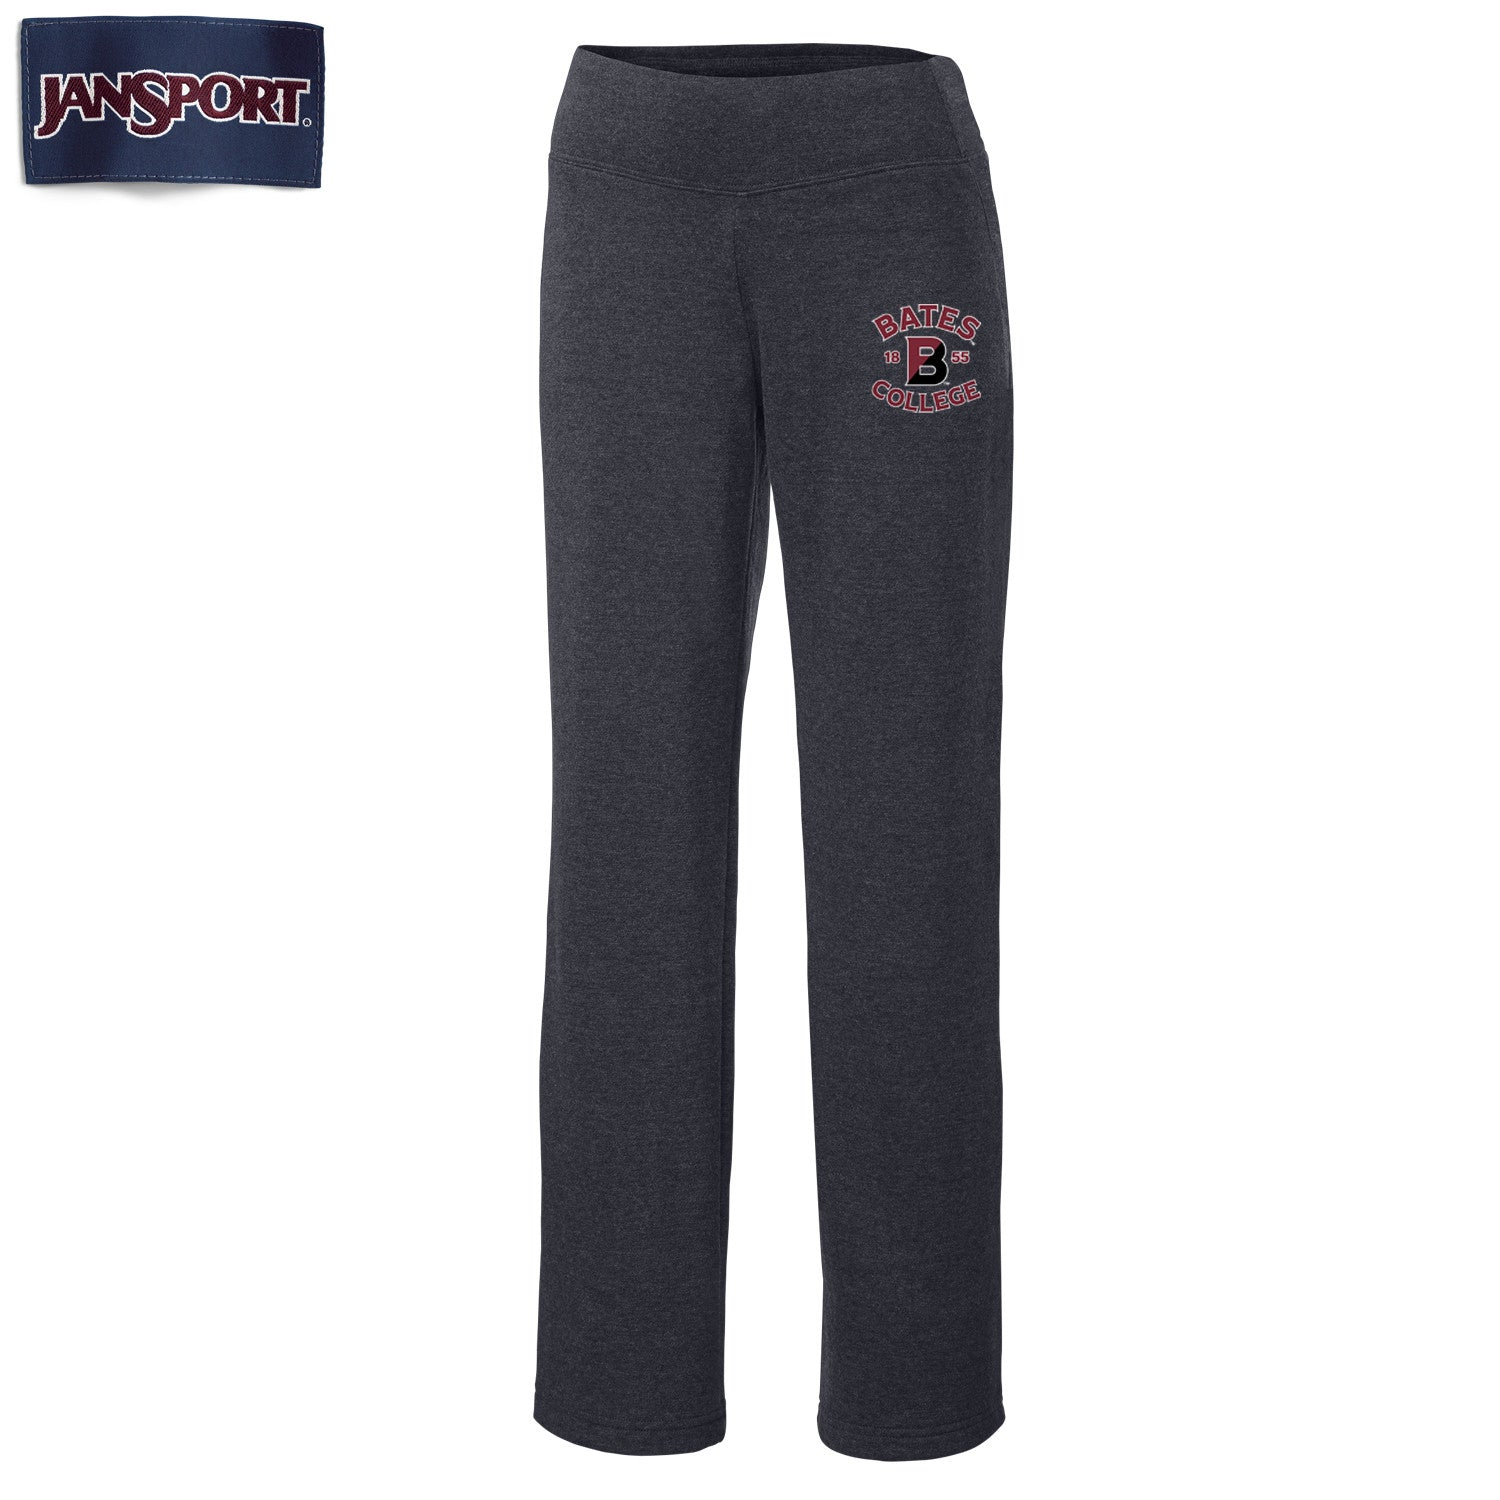 Women's Weekender Sweatpants (2 Color Options) - Clearance, Limited Sizes, Women's, Women's Bottoms